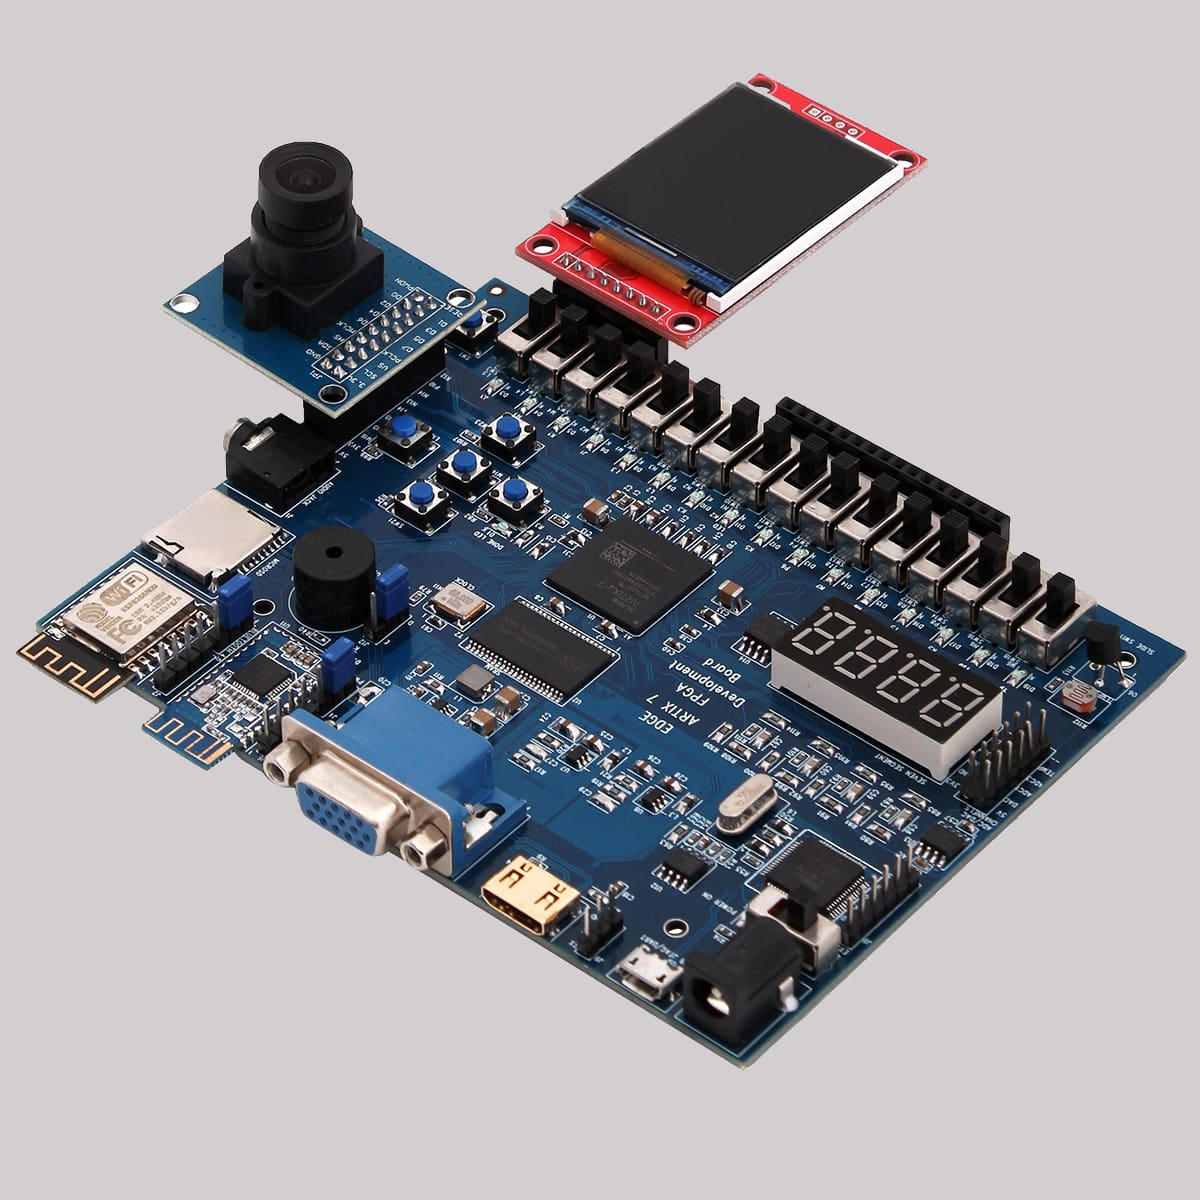 EDGE Artix 7 FPGA Development Board